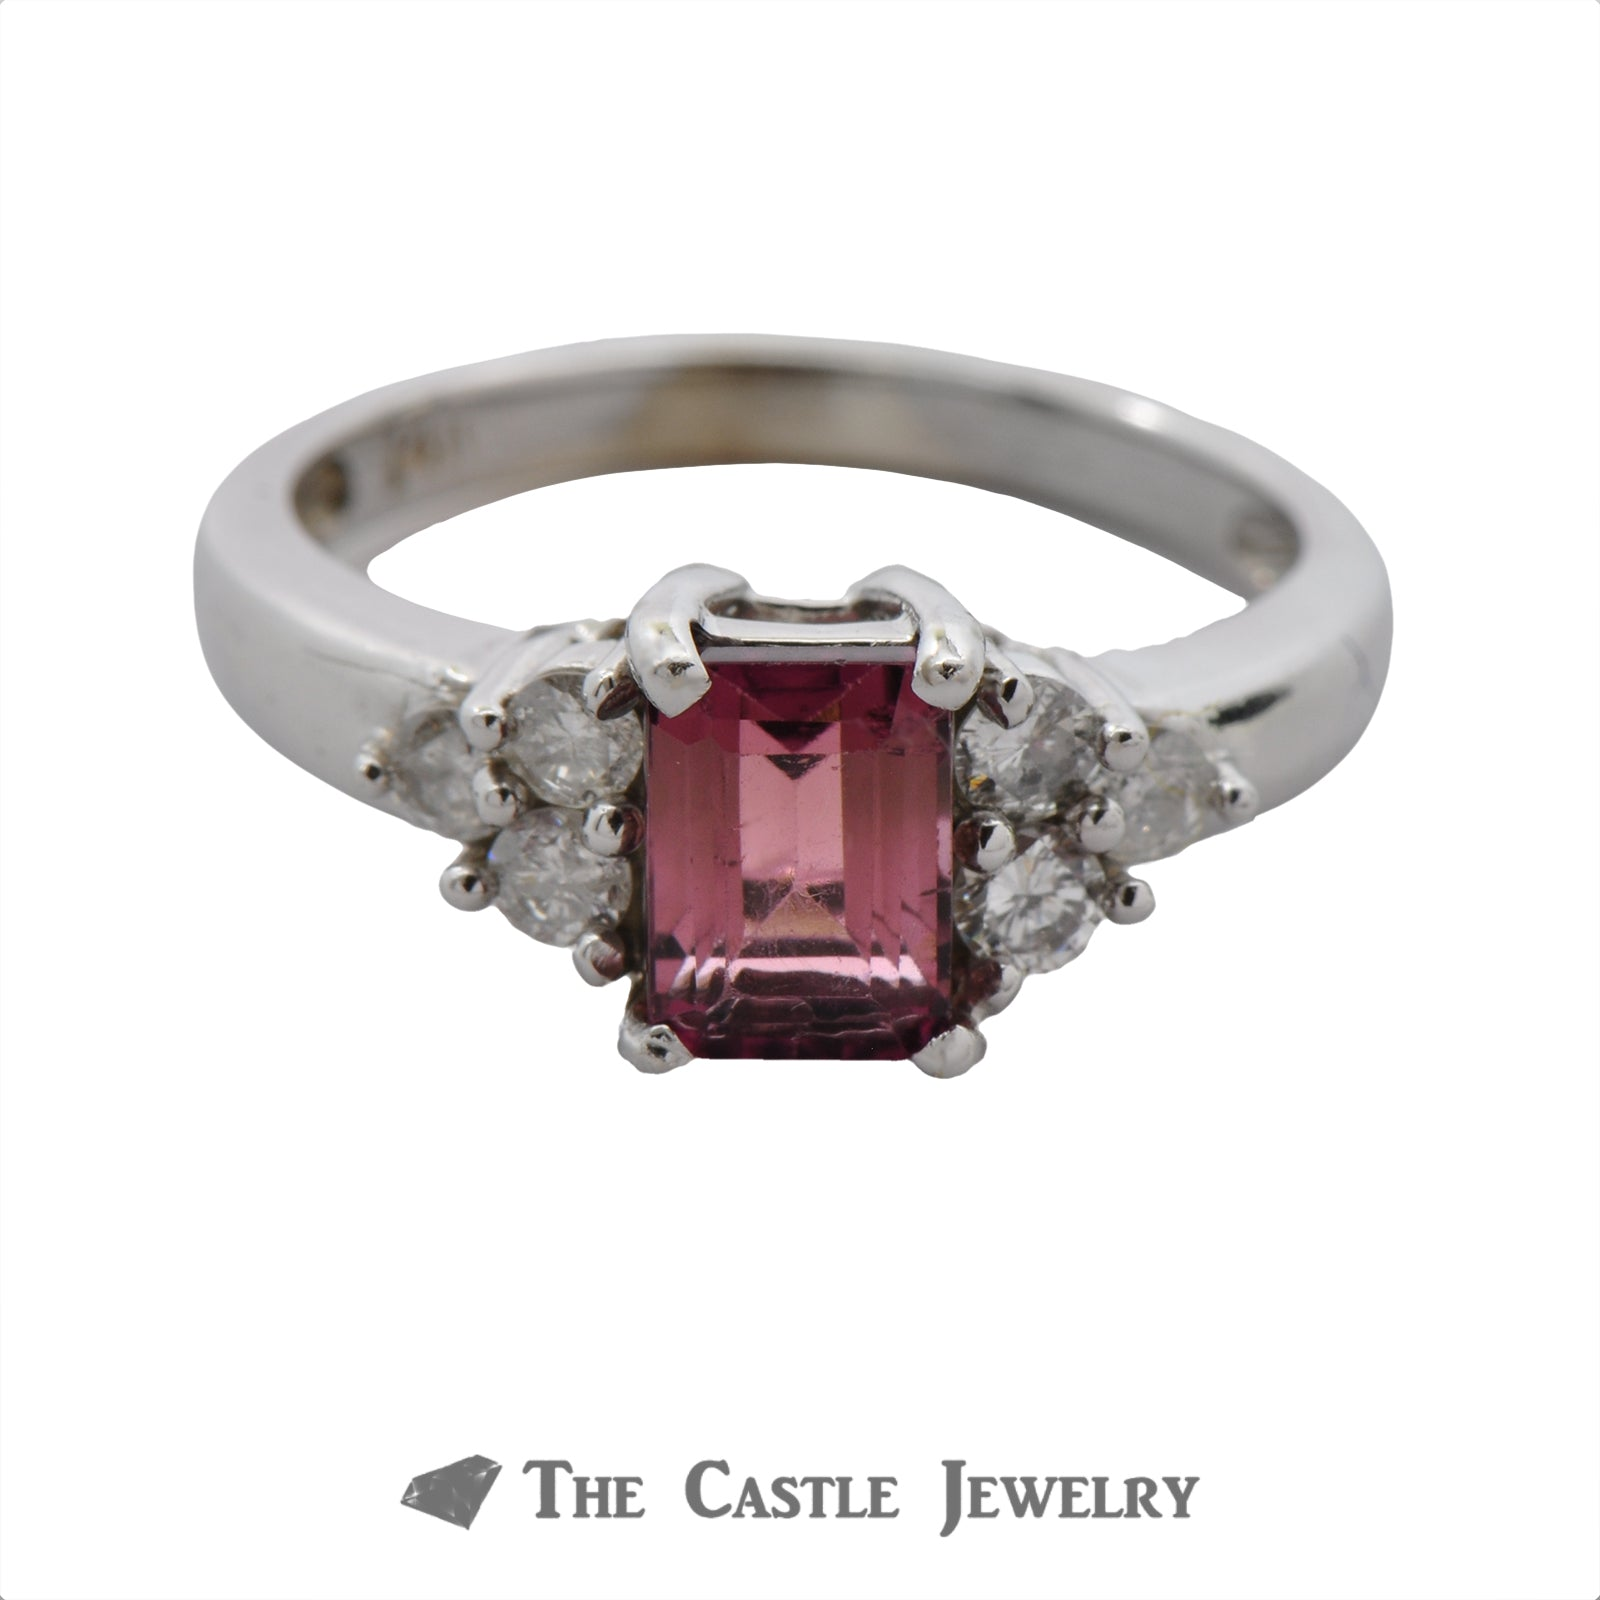 Emerald Cut Pink Rhodolite Garnet Ring with Diamond Accents